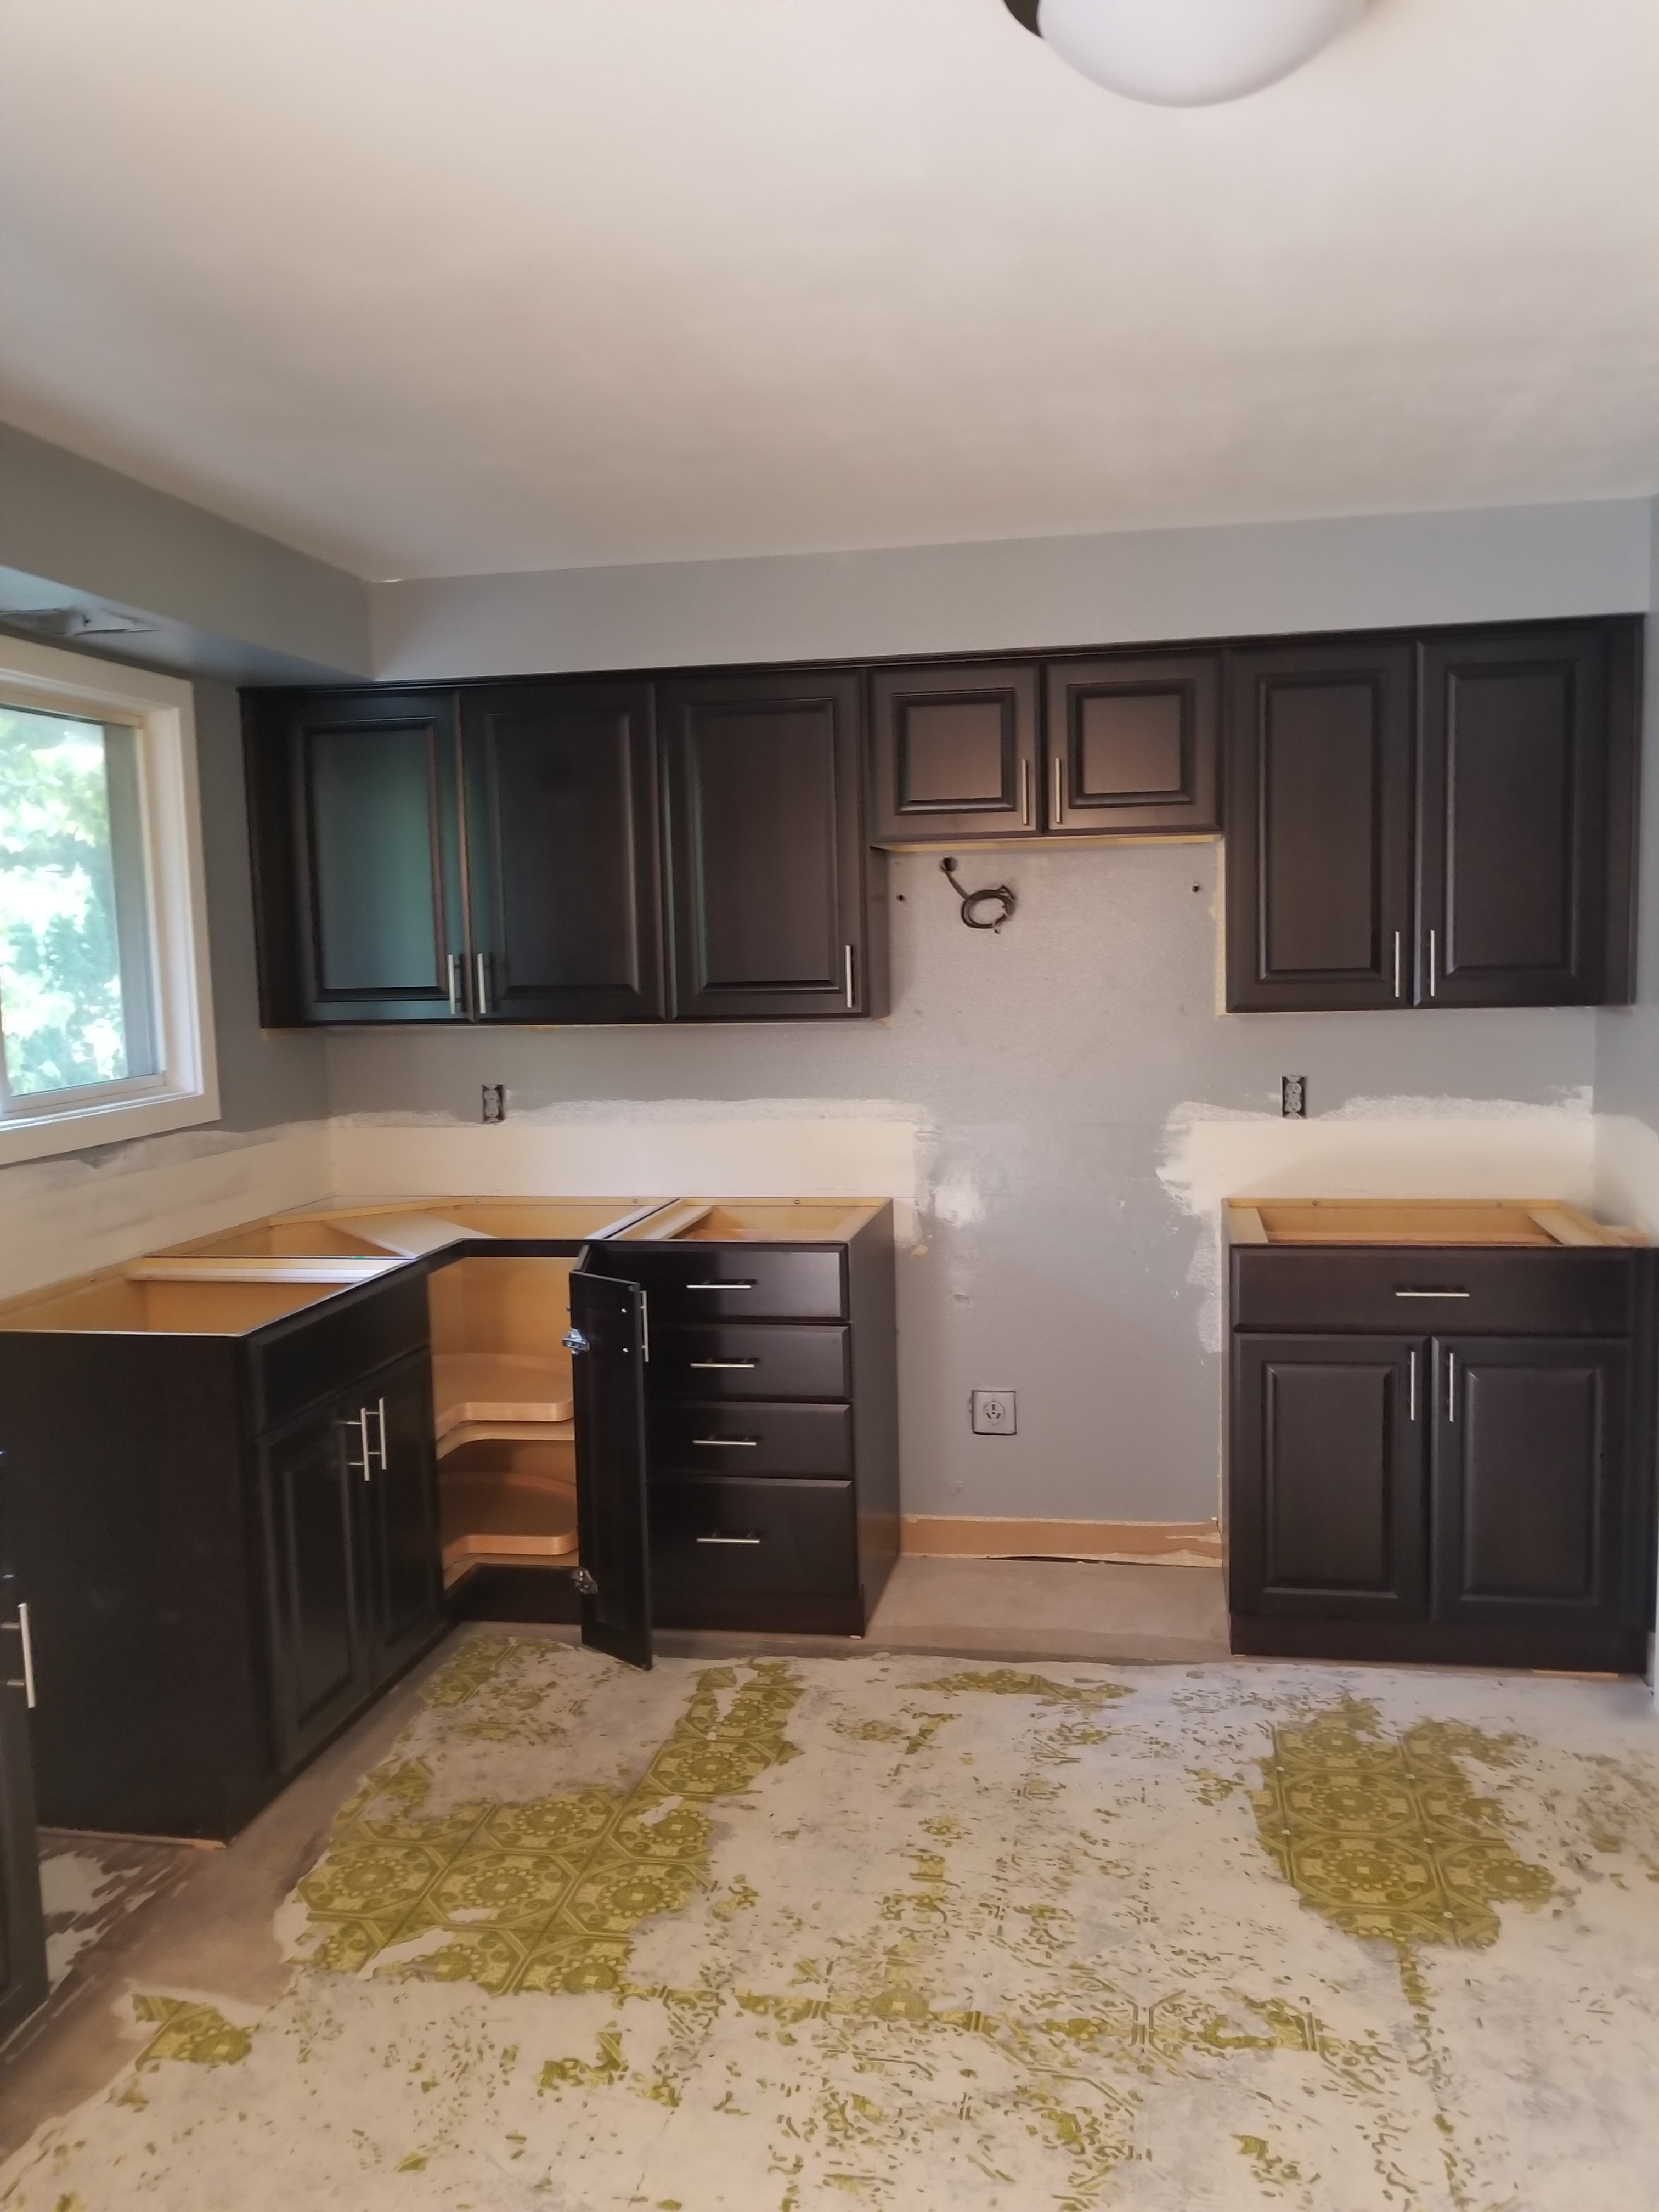 Top 10 Reviews of Lowe's Kitchen Cabinets